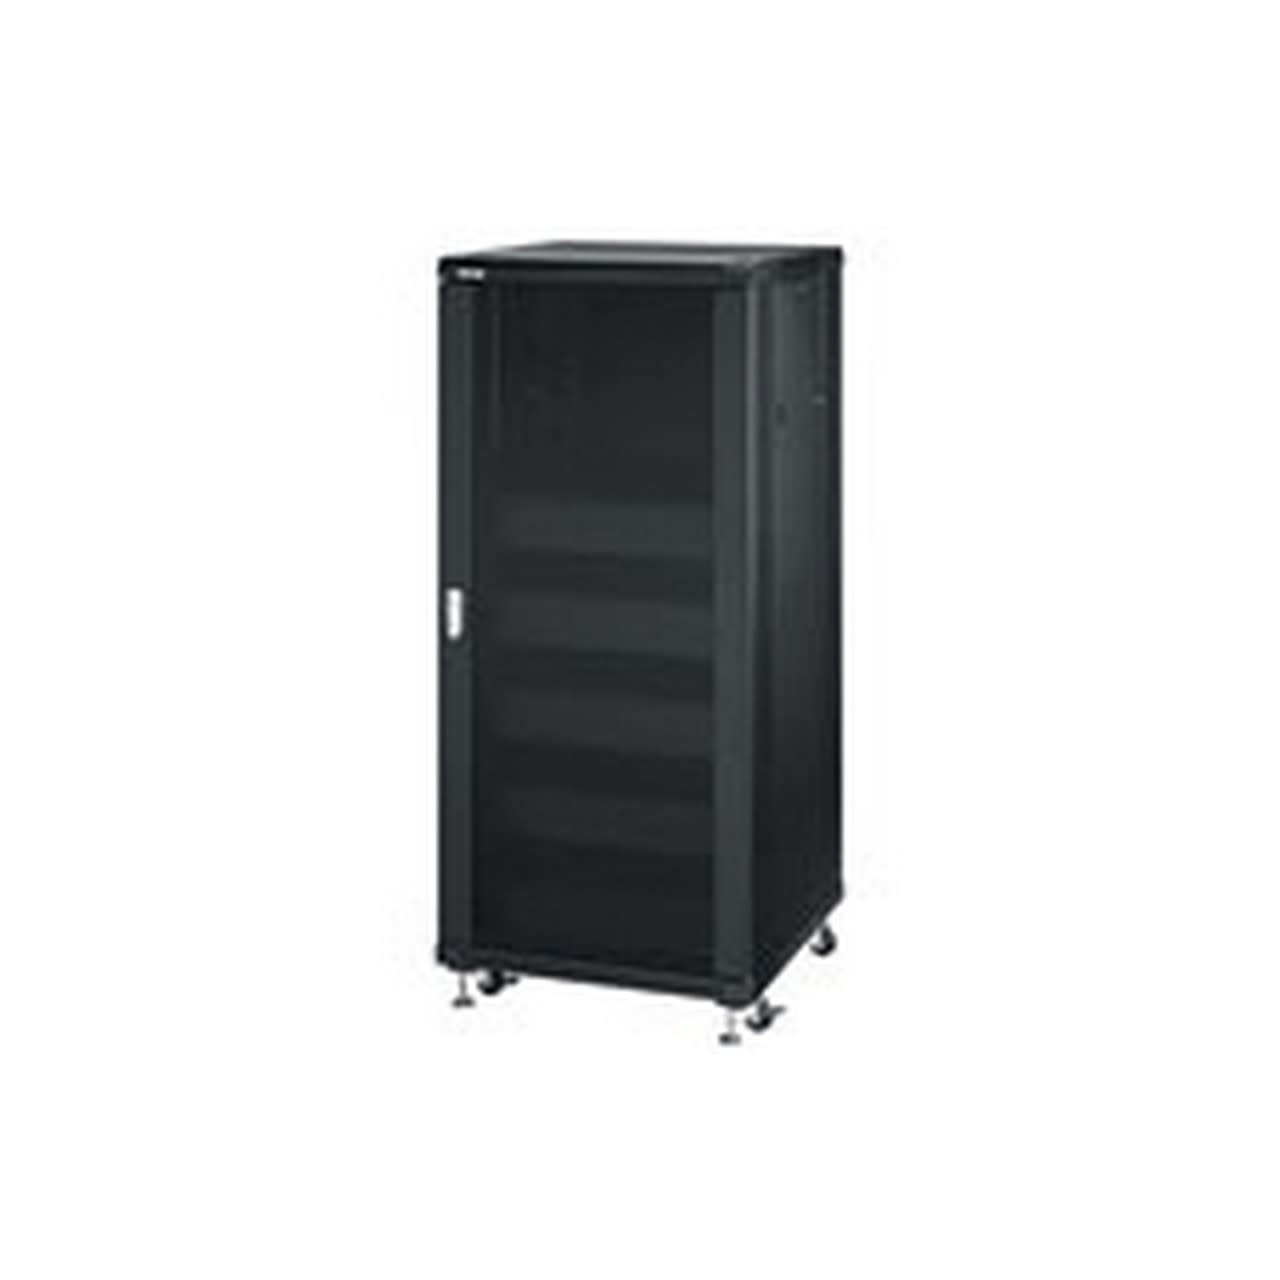 MW Products 27 Space Preconfigured Rack